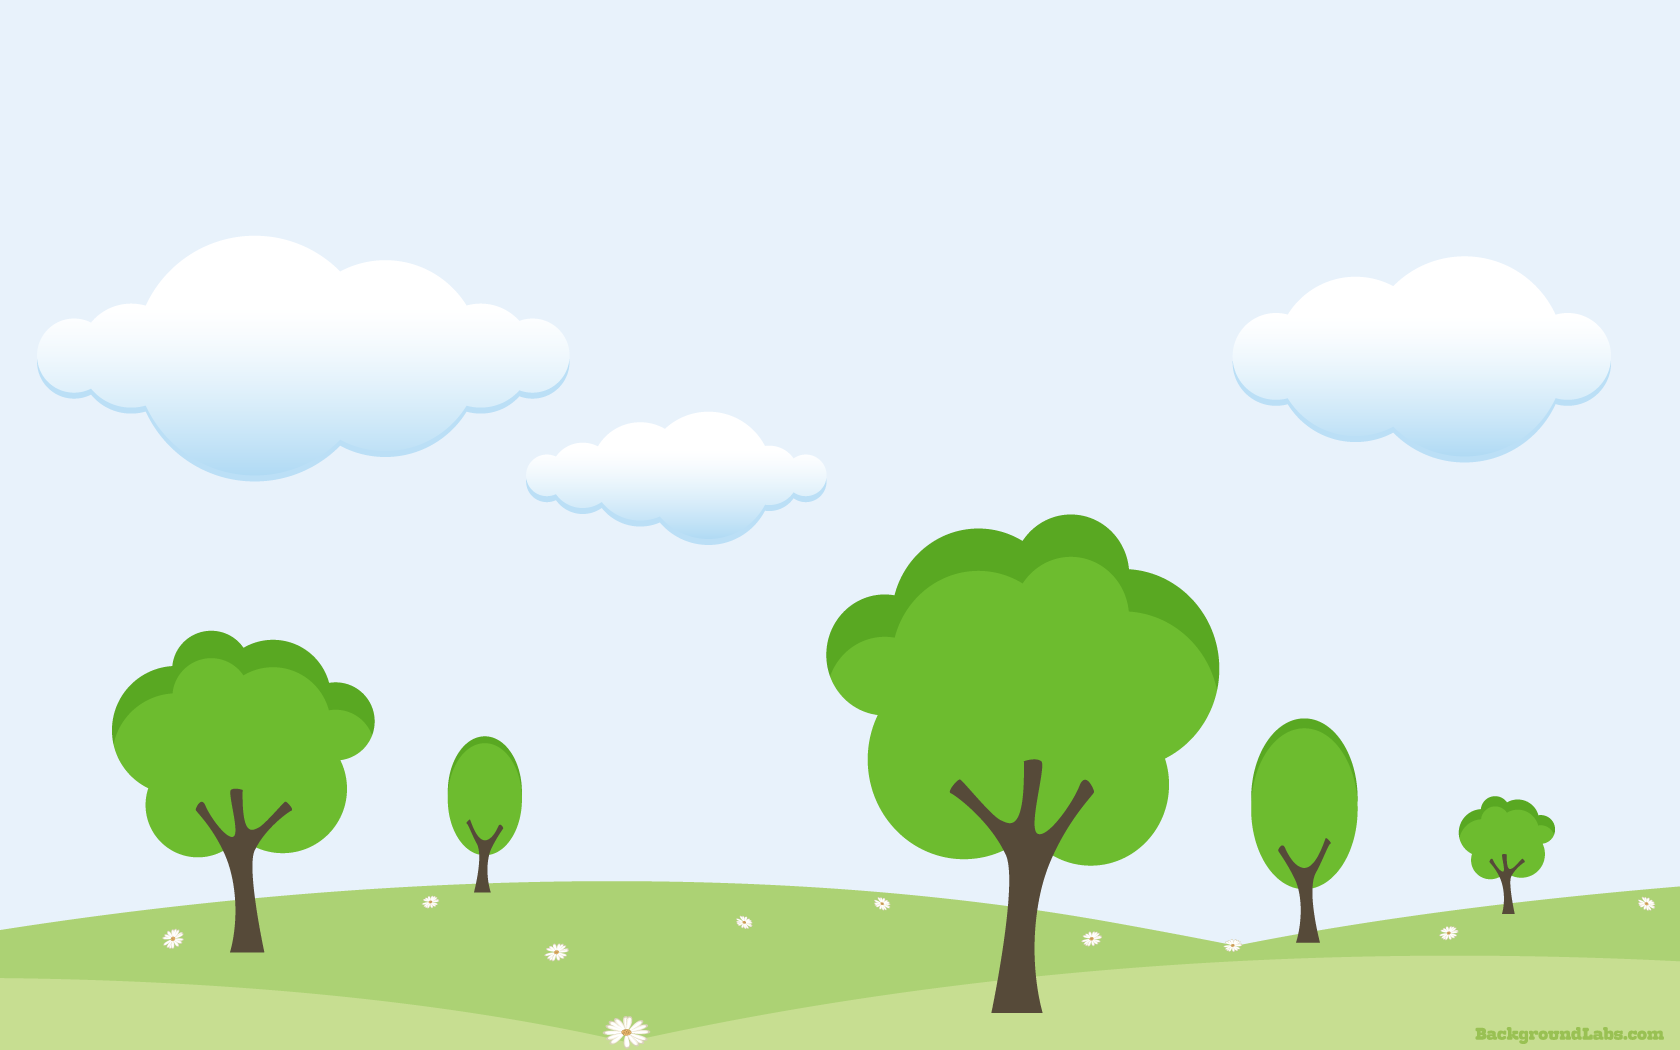 Hills And Trees Vector Background Background Labs